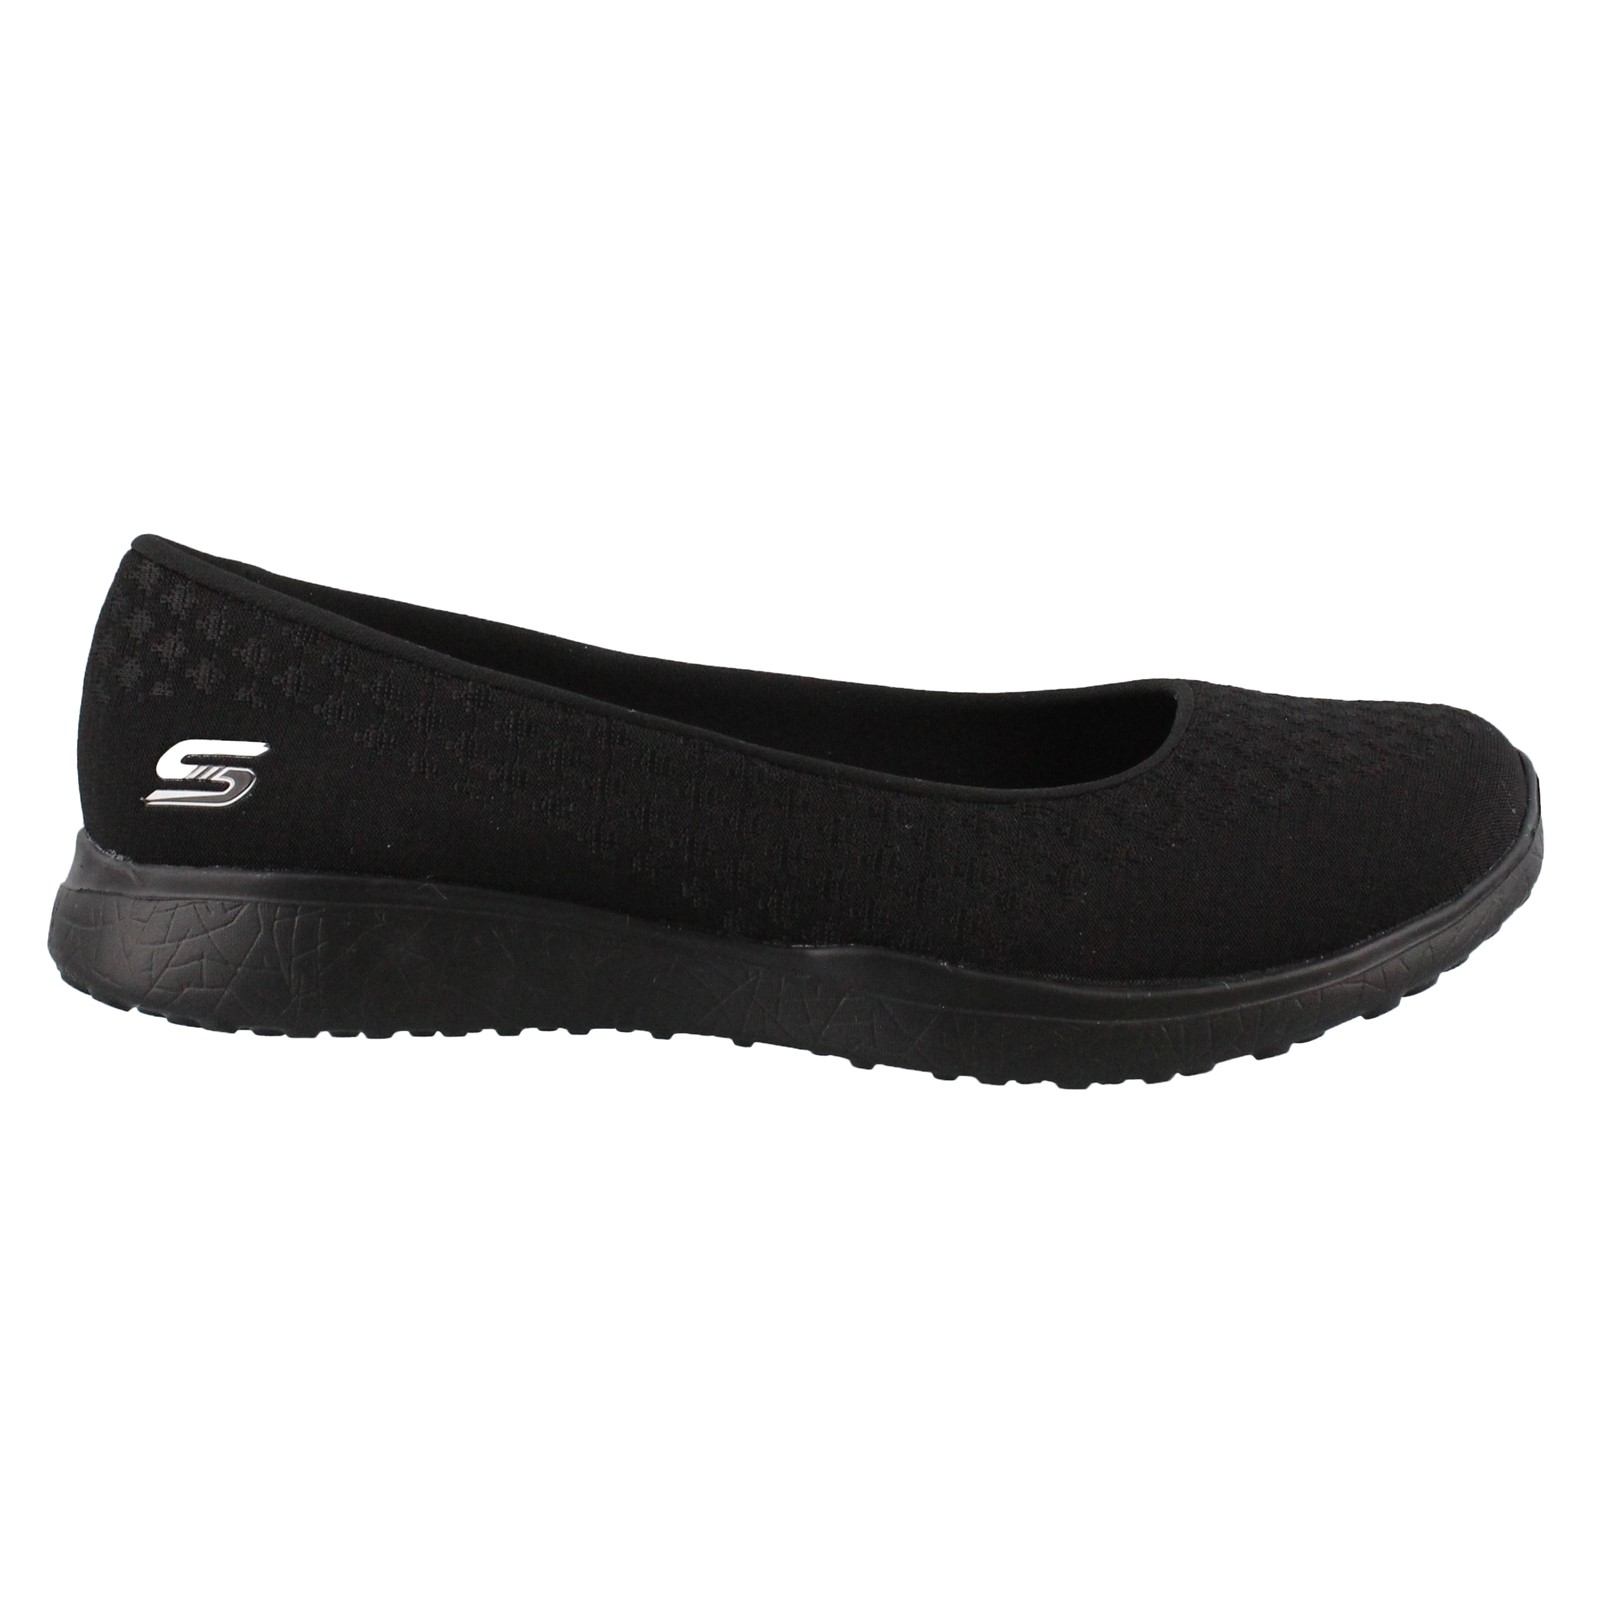 Women's Skechers, Microburst- One Up Flat - Wide Width